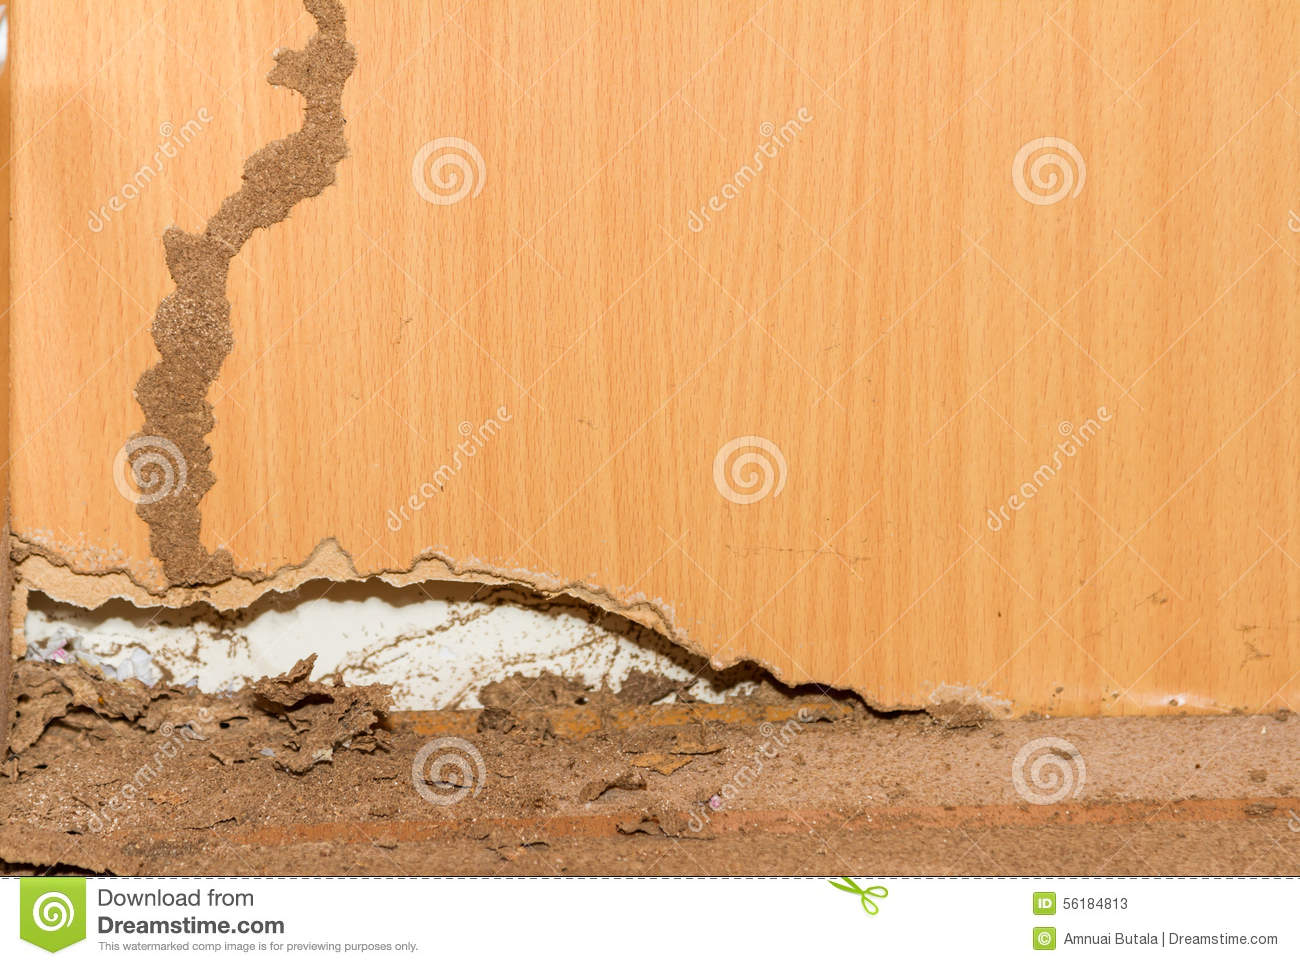 traces des termites sur le vieux fond en bois image stock image du configuration corrosion. Black Bedroom Furniture Sets. Home Design Ideas